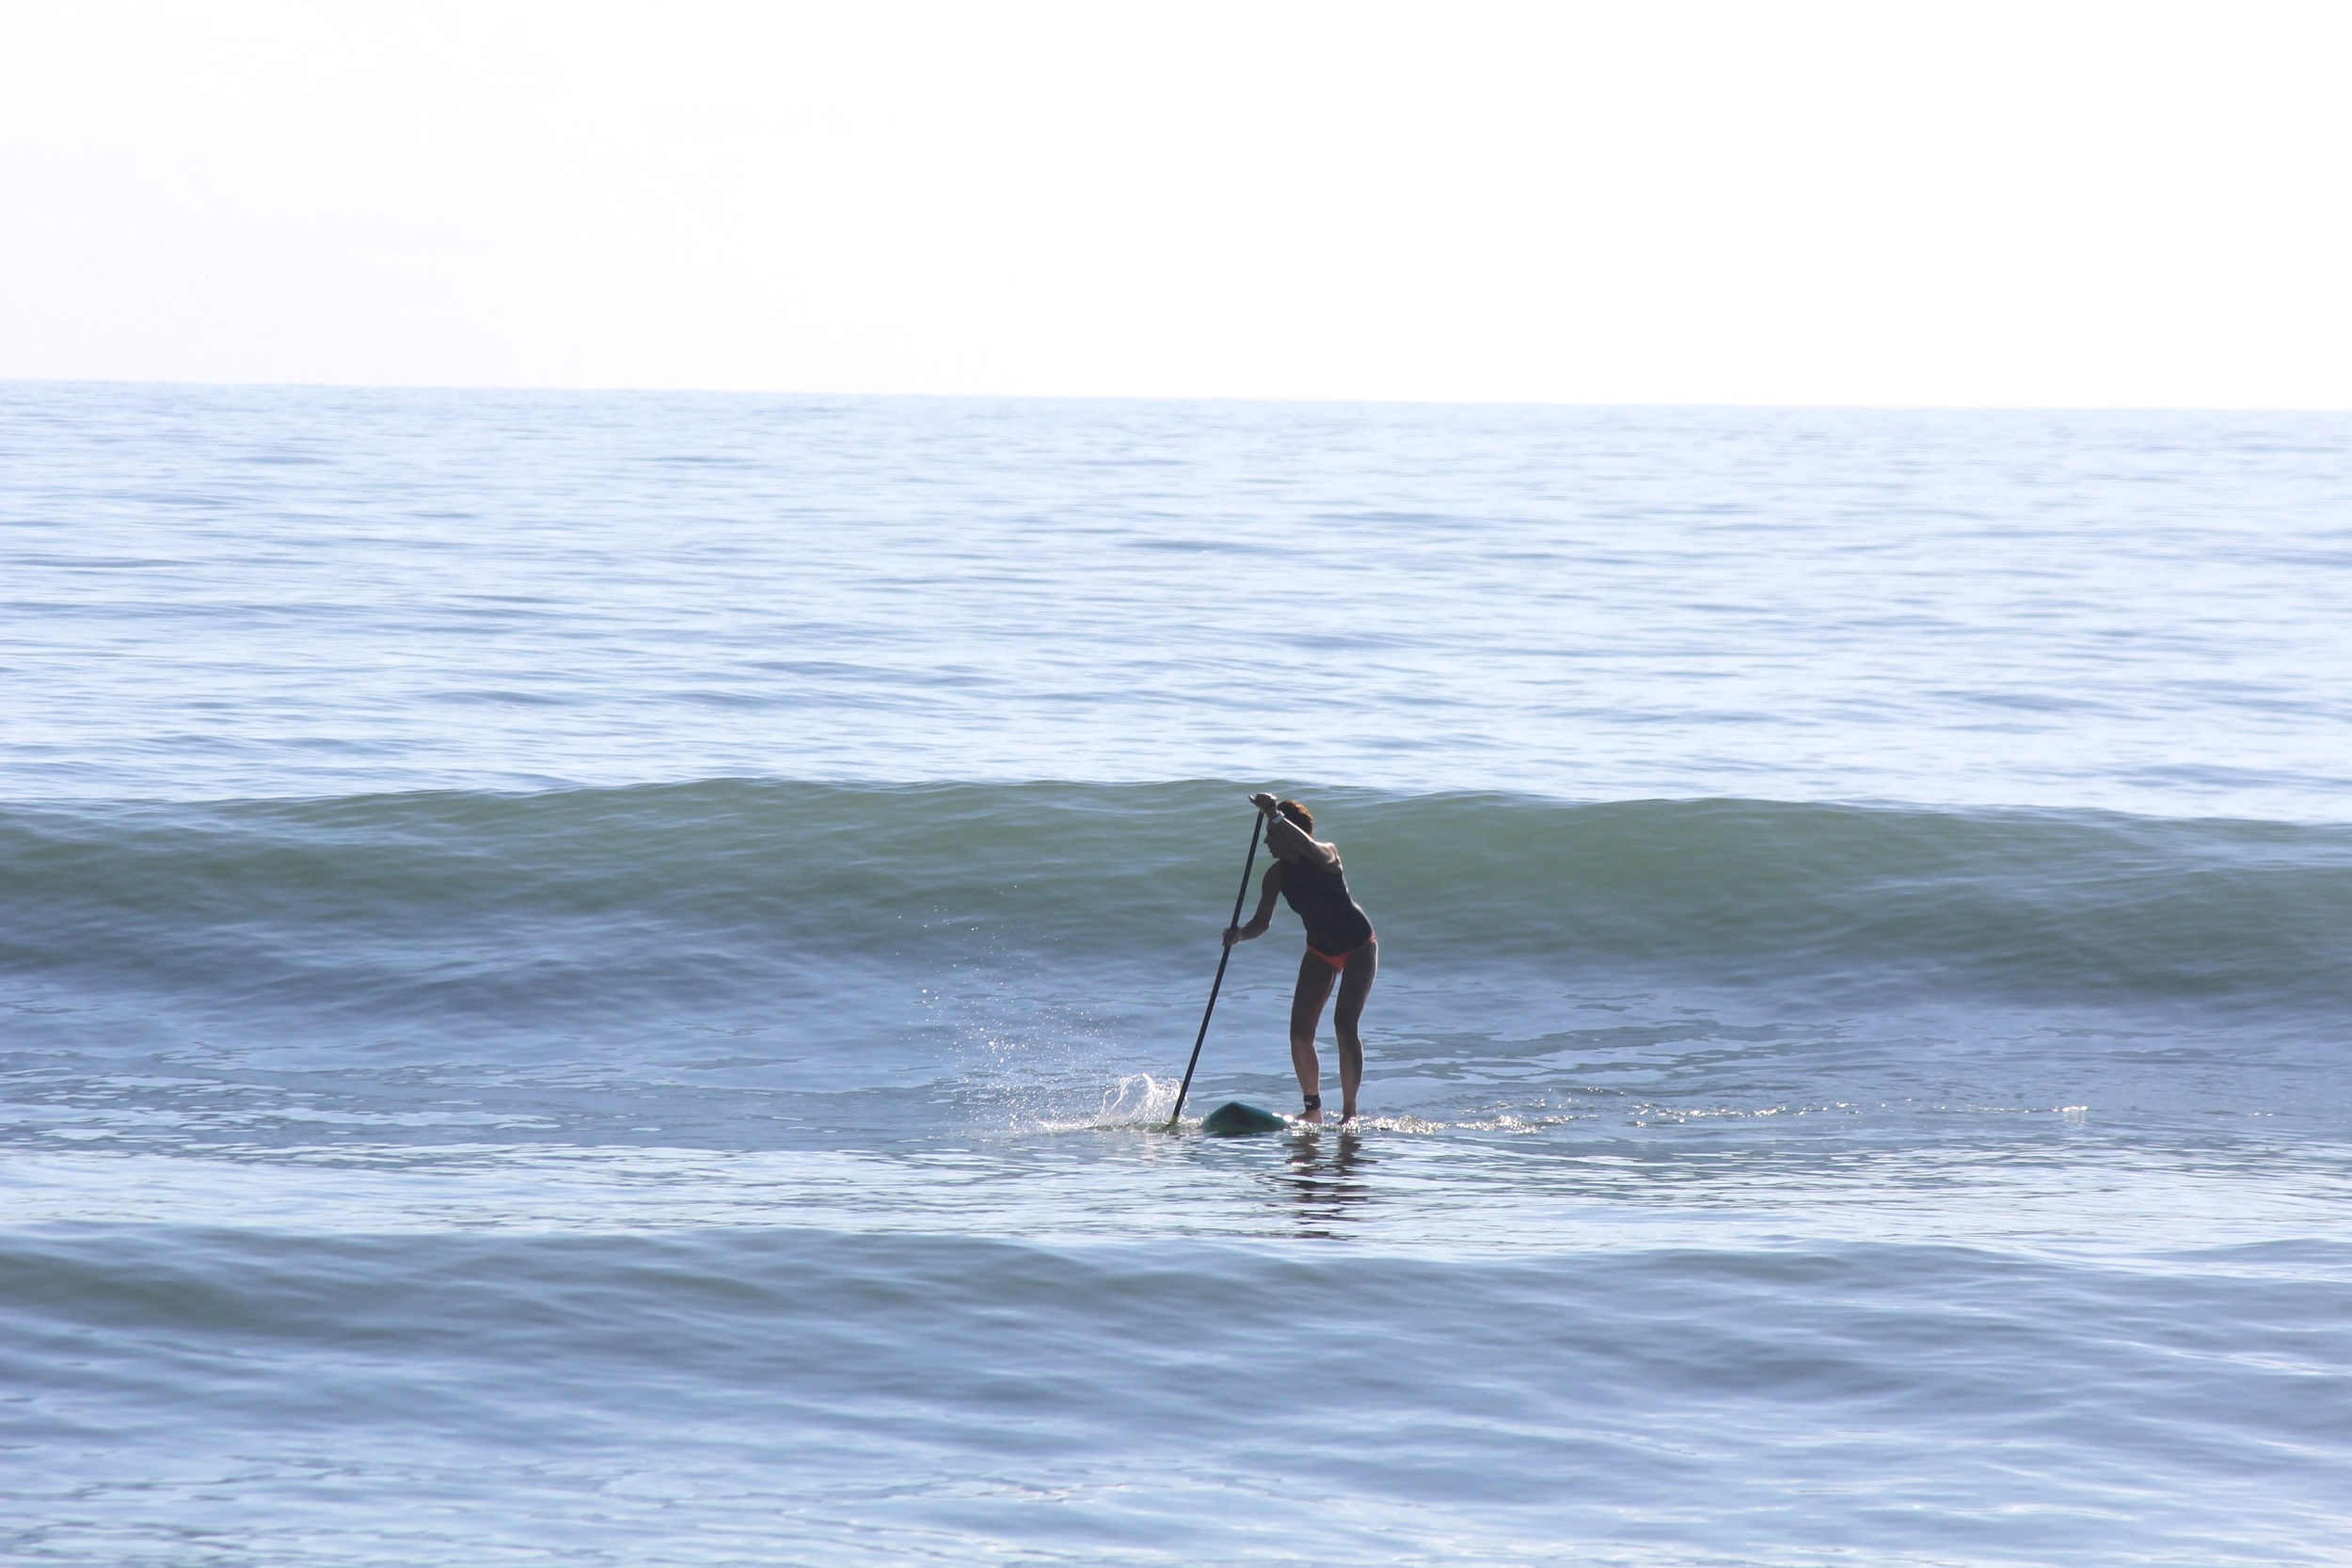 Jacky's first good day on her new 7'7 Accelerator Pro with Speed Rail.